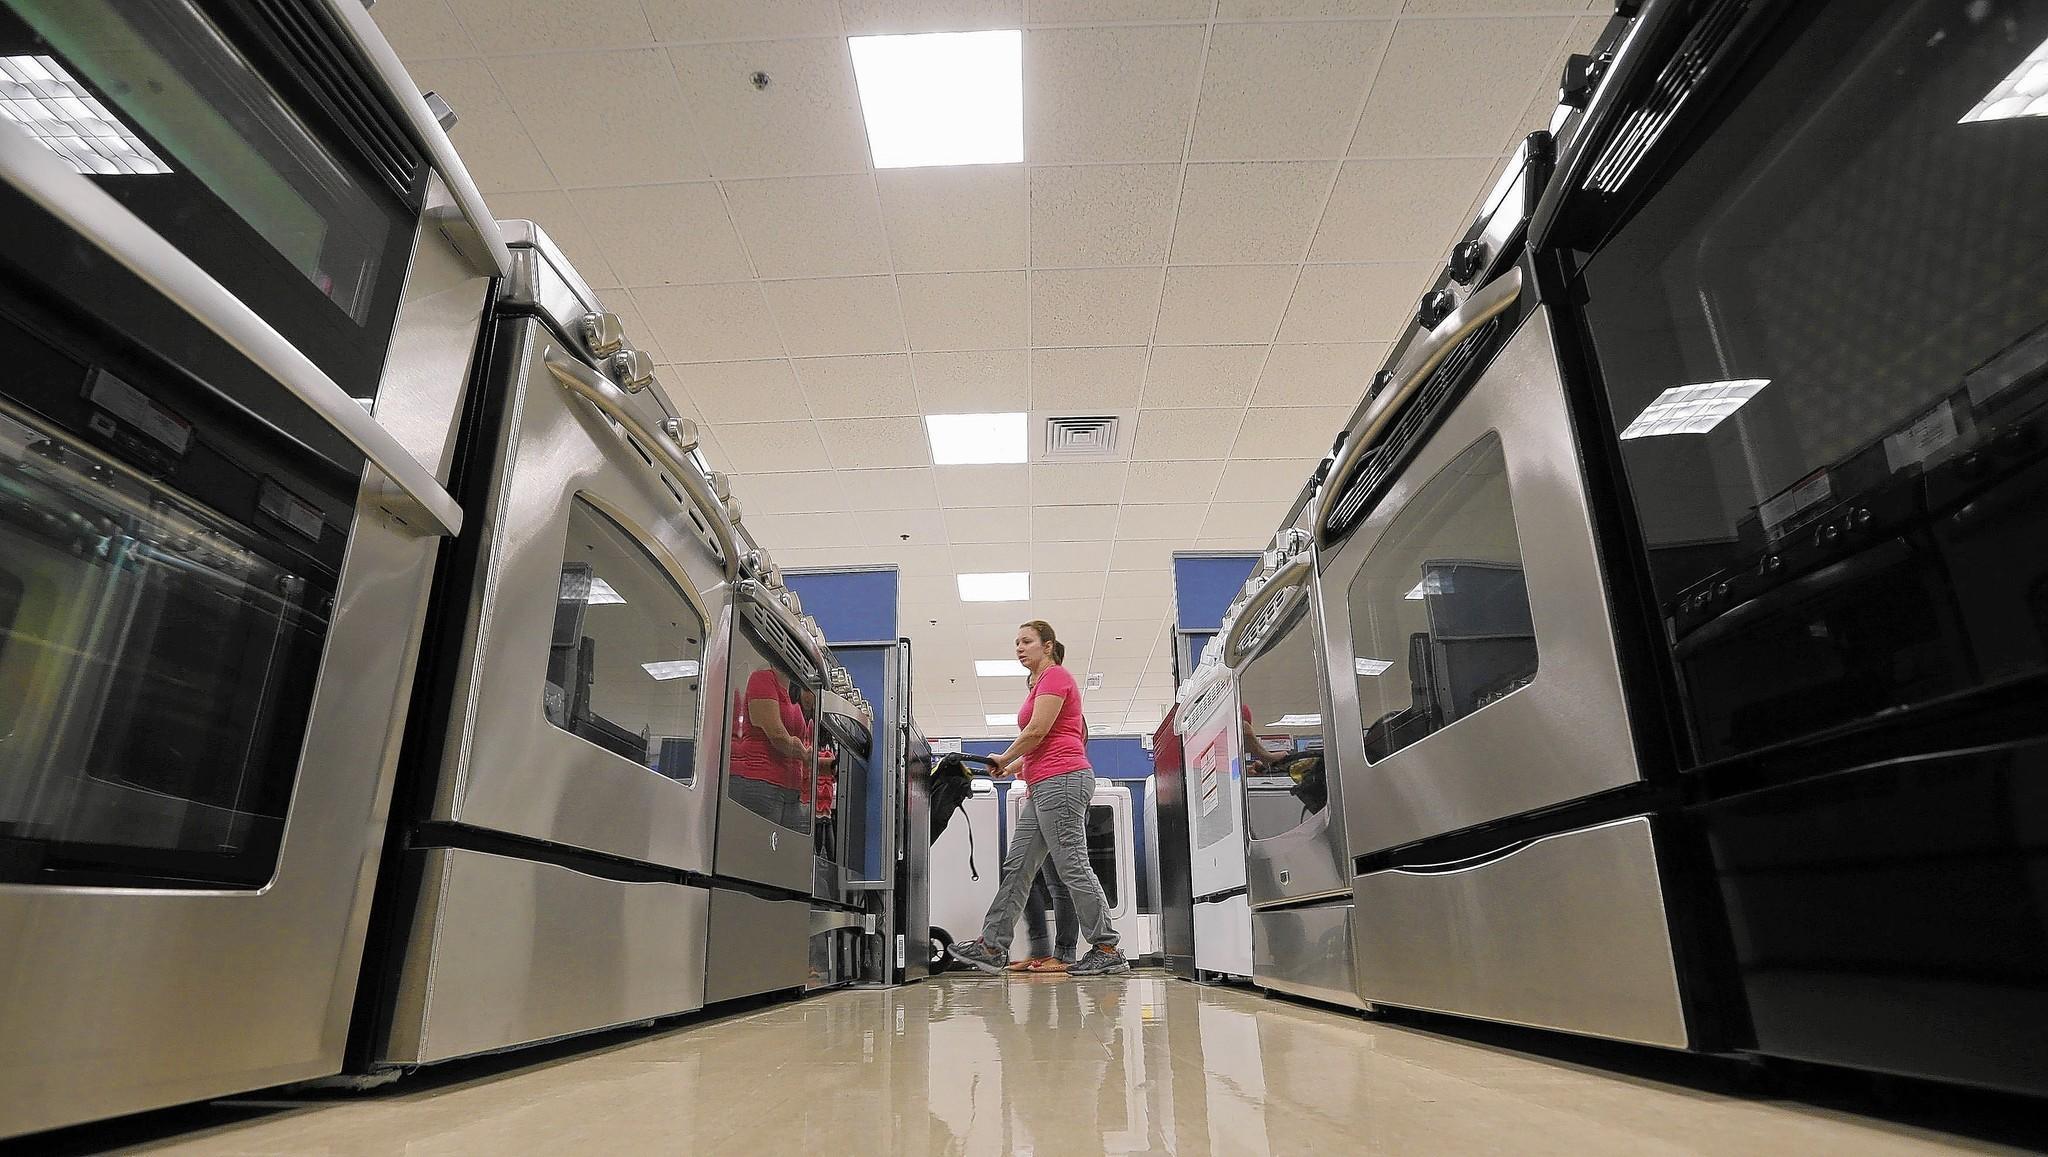 Sears Holdings on Thursday reported that it lost $1.37 billion last year as sales kept falling and the company closed stores.